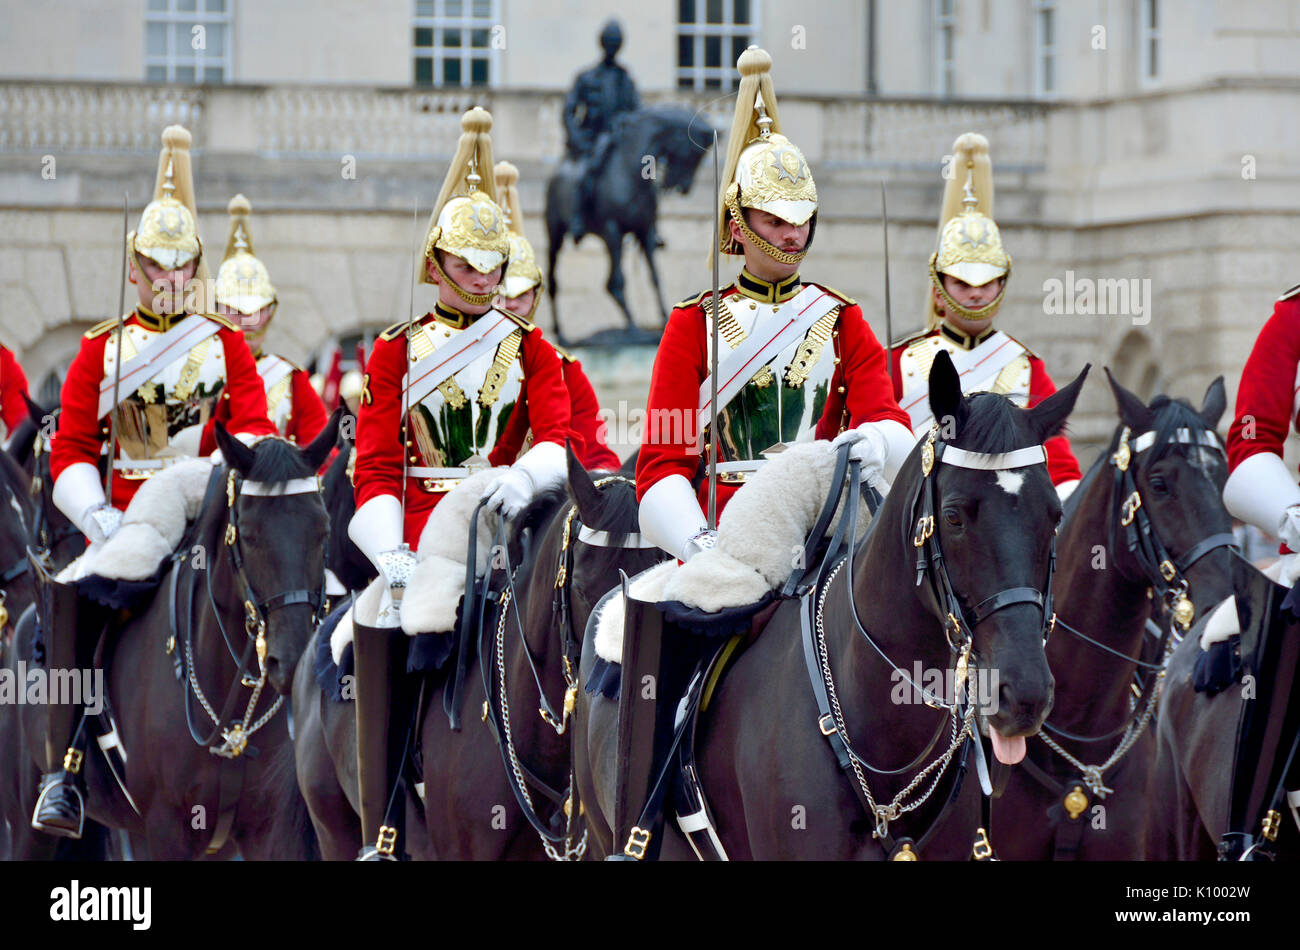 London, England, UK. Life Guards, part of the Household Cavalry, changing the guard on Horse Guards Parade Stock Photo